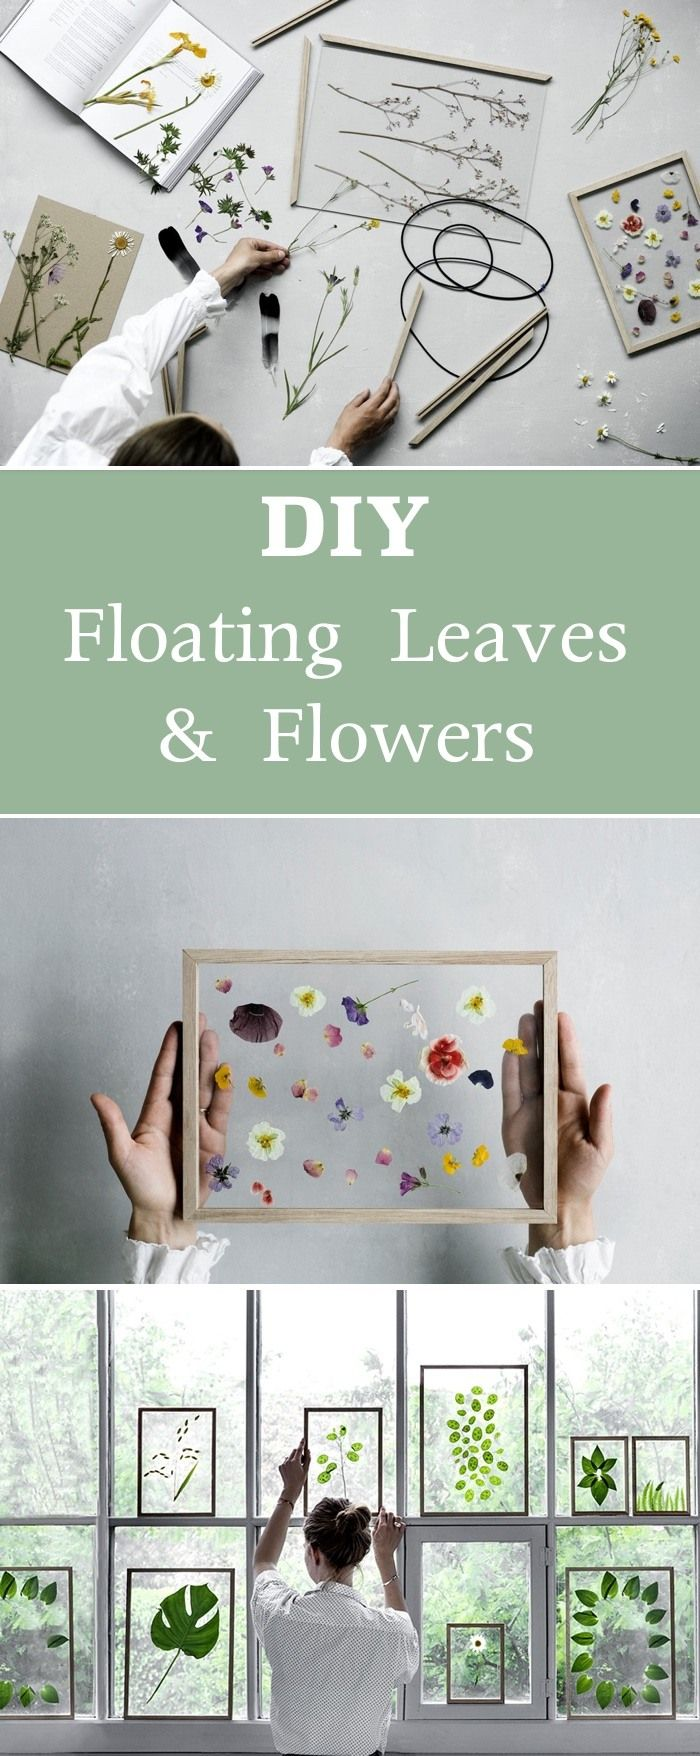 Design Diy Art Projects best 25 diy art projects ideas on pinterest easy wall floating leaves and flowers give any room a fresh look with these simple decor